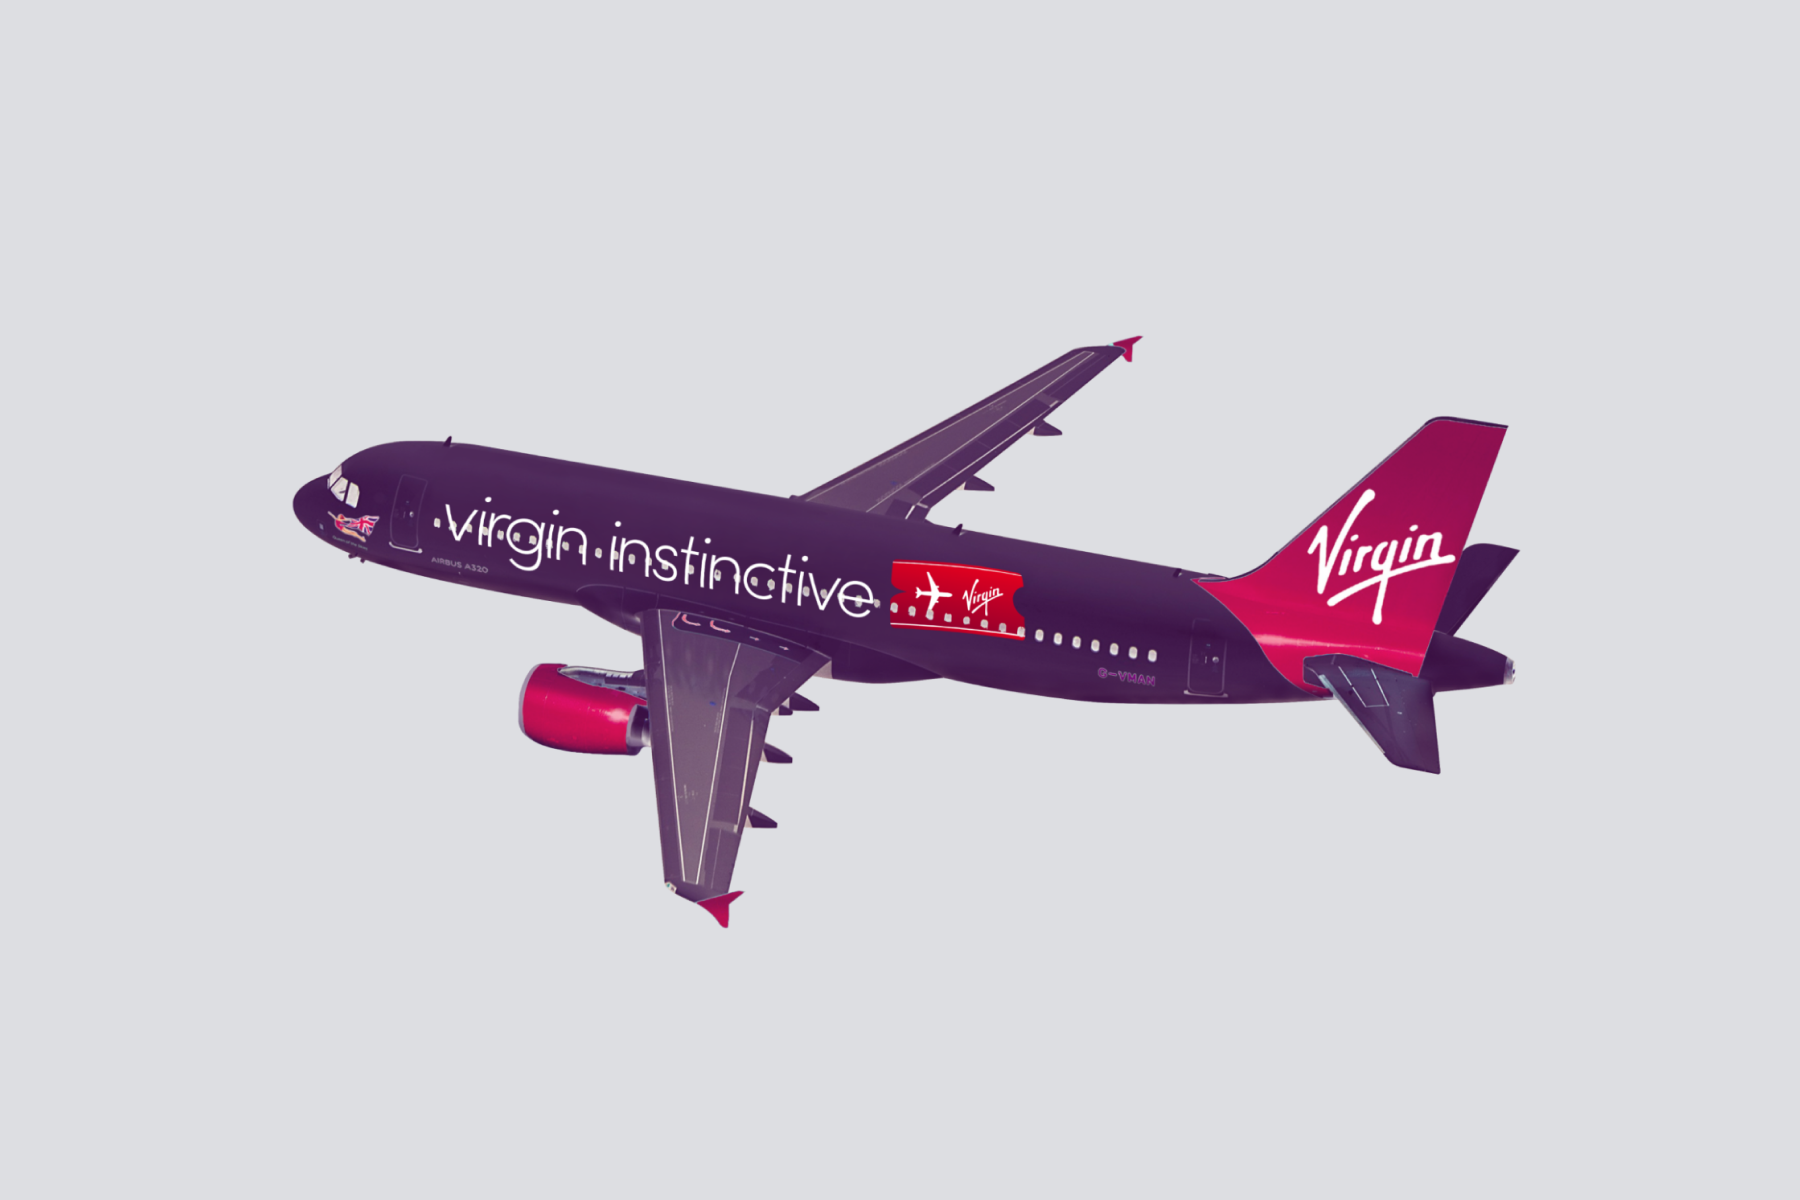 Virgin Instinctive Aeroplane